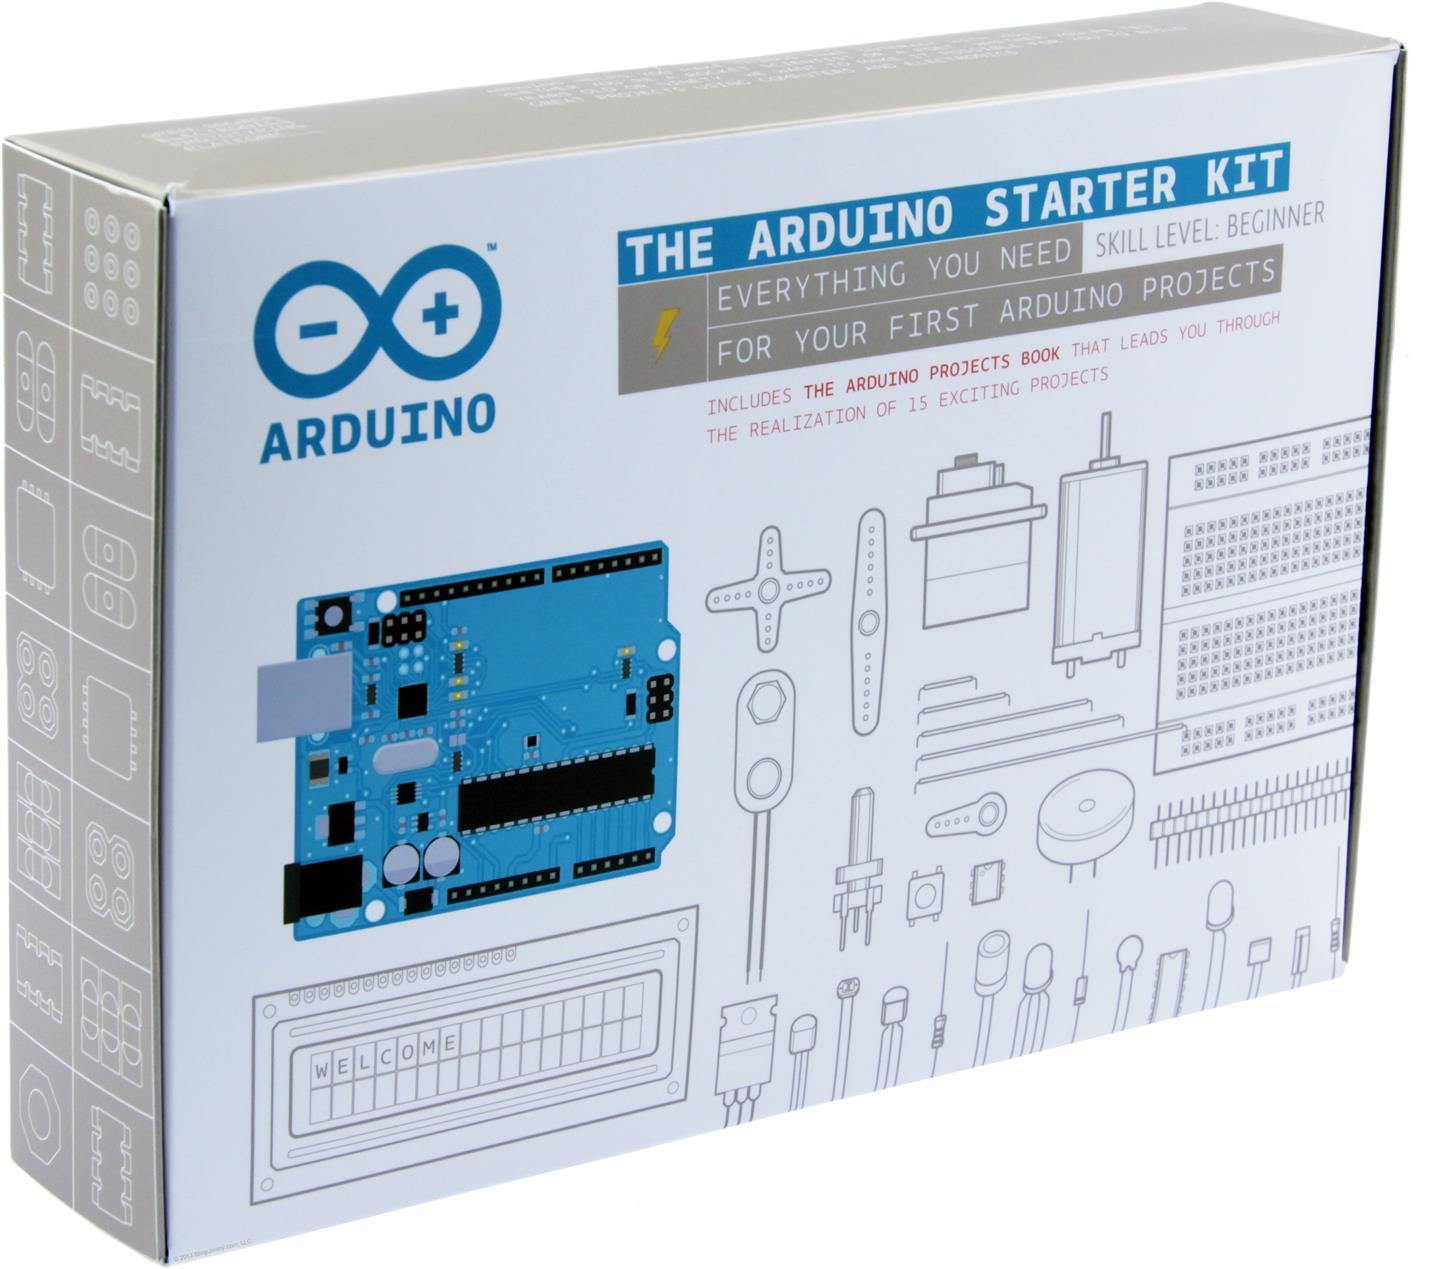 Arduino starter kit for beginner sk end am